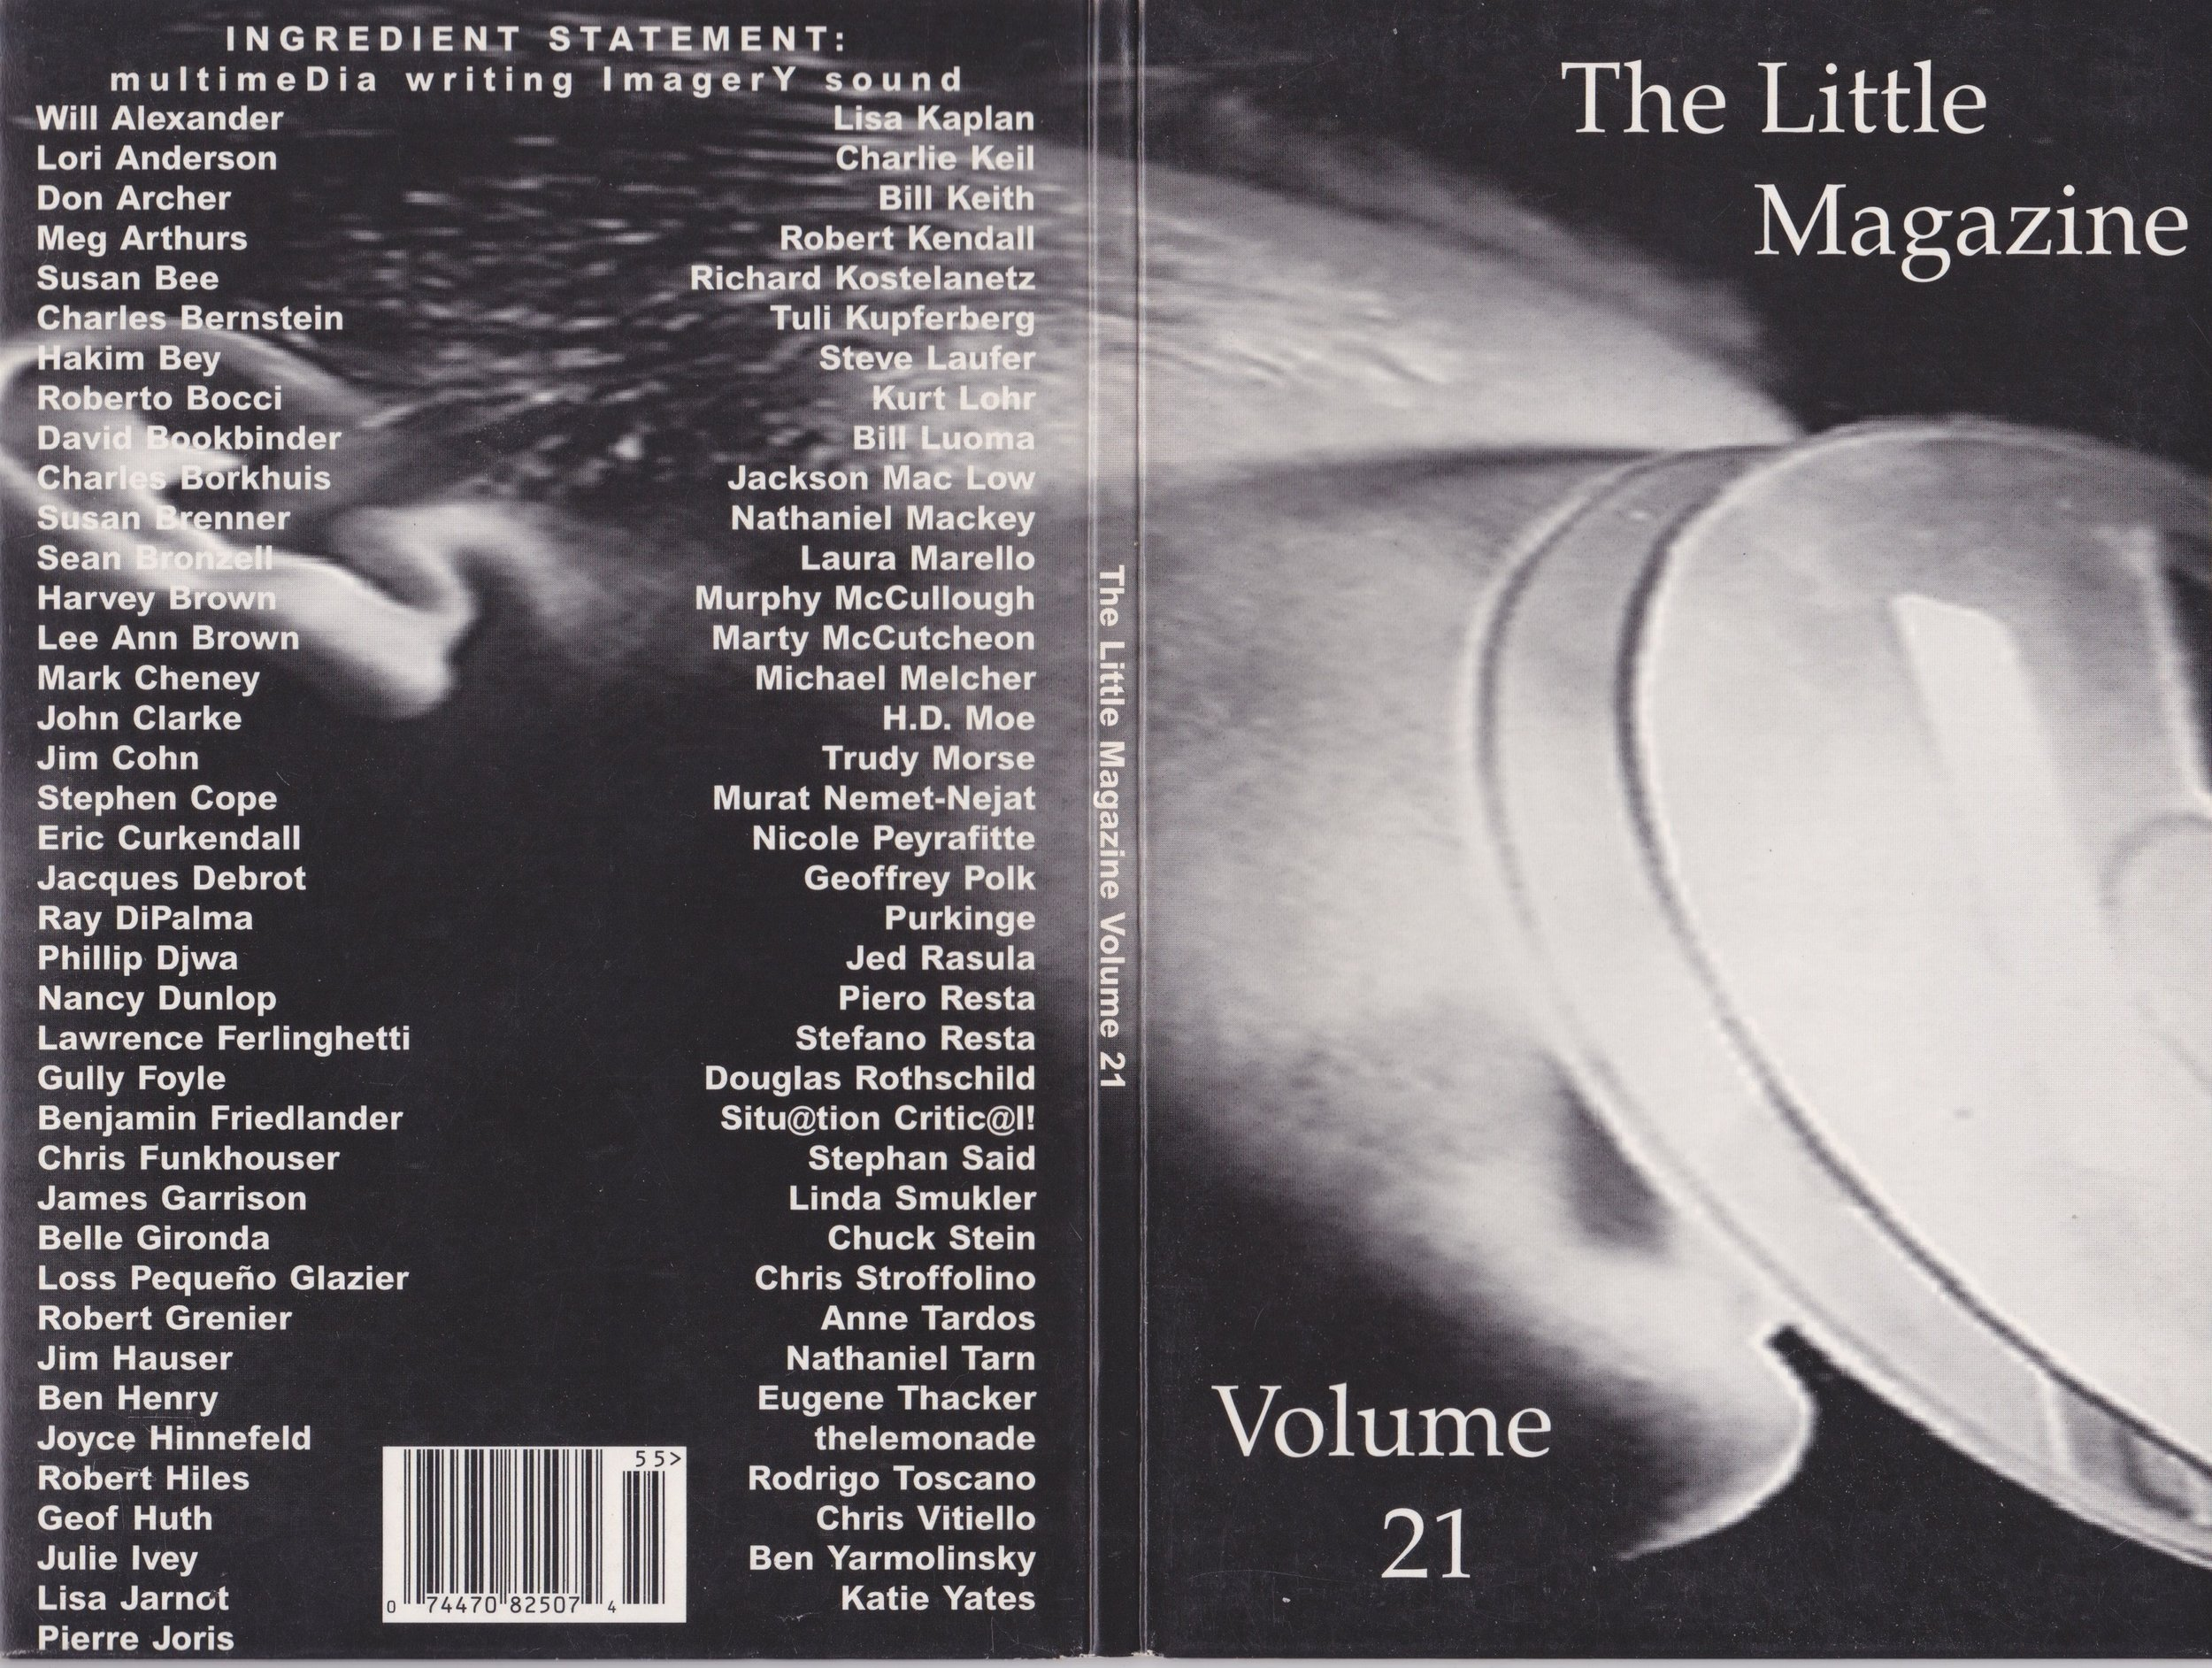 """When I was a doctoral student at the University of Albany, I had the good fortune of being Poetry Editor for   Volume 16   of  The    Little Magazine     and Co-Editor with   Jan Ramjerdi   for   Volume 17 . But the real exciting time for the magazine was when it went digital under the editorship of   Chris Funkhouser  ,   Belle Gironda   and Ben Henry. I am still hunting for online versions. No luck. Our early experiments with hypertext are lost?  I particularly mourn the loss of the online   The Little Magazine Volume 21.3 , MAPPING , which included my piece """"Door Where Carol Merrill is Still Standing."""" Luckily, scholar Karin Sanders wrote about the piece while it was still online. See    Bodies in the Bog and the Archaeological Imagination  . """"If you click on Anderson Moseman's cyber poem door, you can read about the obedient Carol Merrill; known by a generation of Americans as the quintessentially smiling but mute TV game hostess whose gesture toward the doors (in Moseman's optic) become a spectacle of sacrifice, not of the bog girl but of the participating 'victim' in the greed play of consumerism. If you choose the wrong door and win a goat instead of a car you are, so to speak, sacrificed to the laughter of the audience and viewers. That's the name of the game. In that game, the bog girl challenges the slick host, Monty Hall, as the poem insinuates a carnality of sacrifice different than one to which she was submitted two thousand years ago."""" Luckily the text of the poem survives in my collection  PERSONA .  Thanks to Chris Funkhouser, 150 video and audio files from   Volume 21   of have been salvaged. Funkhouser talks about how co-editor/producers Belle Gironda and Ben Henry made of this CD-ROM in an article on    Jacket2  : """"The CD-ROM publication,   The Little Magazine, Volume 21   (1995), featuring 77 artists, contains 127 audio (.wav) files, many which I recorded; an entire section of the project was devoted to vocal readings, including recordings of Joh"""